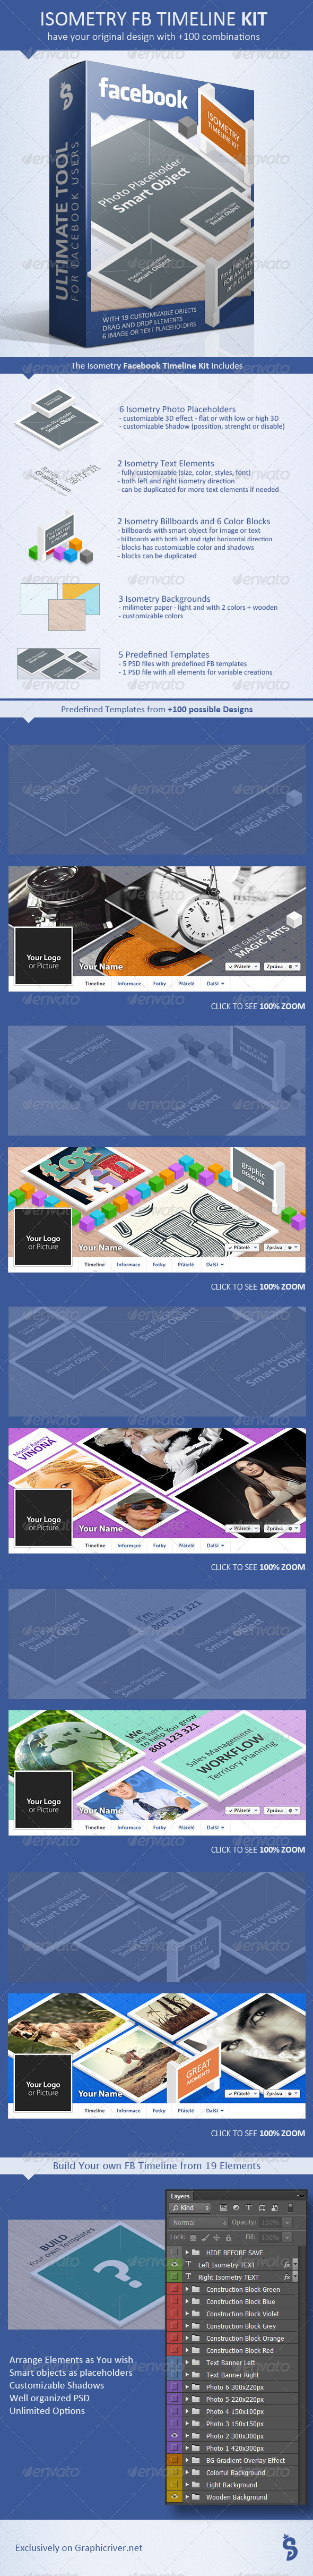 GraphicRiver Facebook Timeline Kit Isometry 8101798